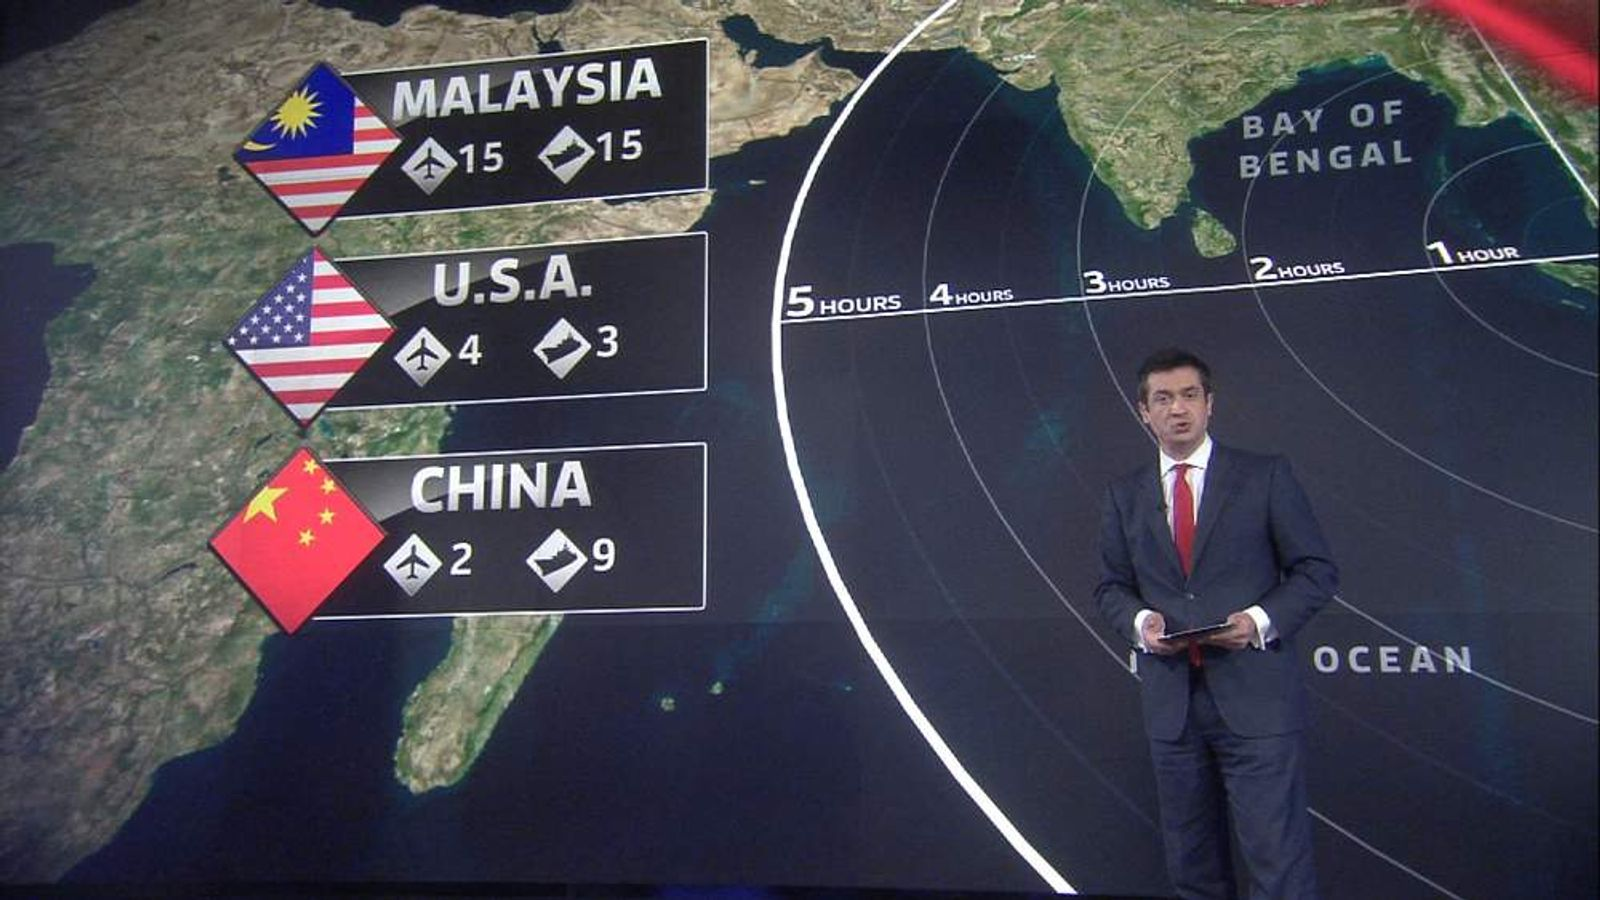 Sky's Niall Paterson looks at what the Malaysian authorities know so far.